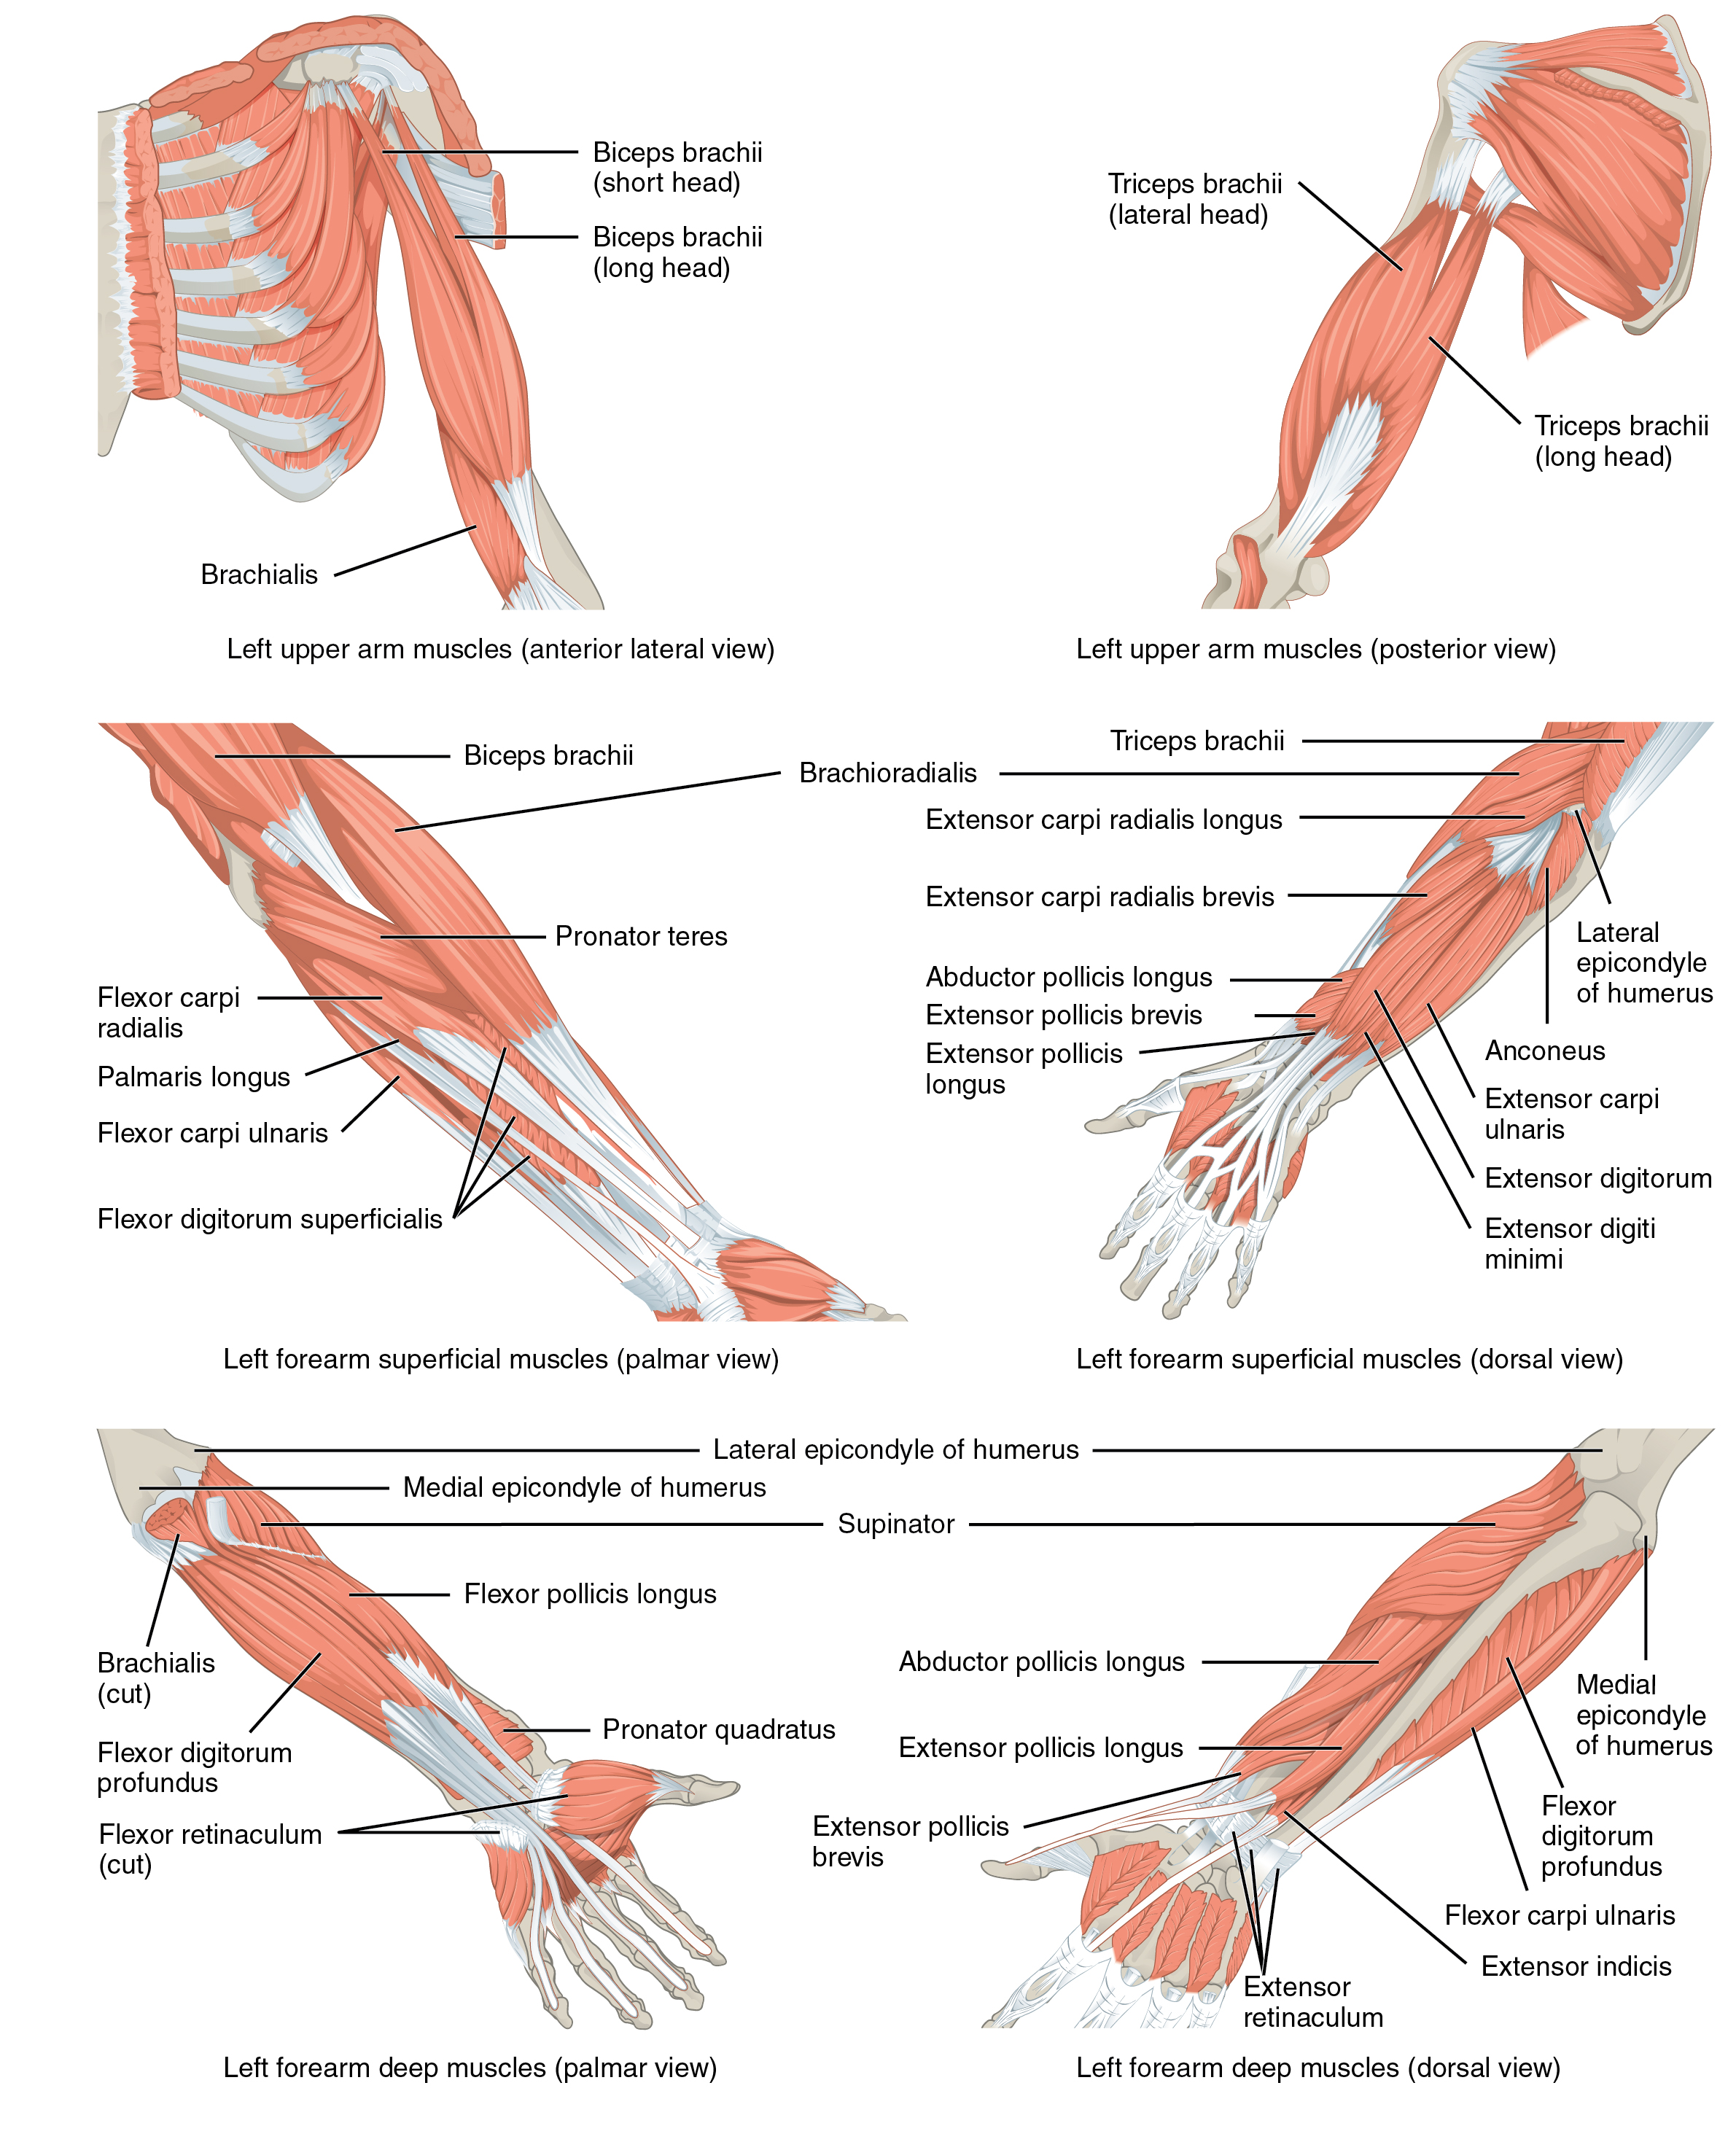 Muscles Of The Upper Arm Human Anatomy And Physiology Lab Bsb 141